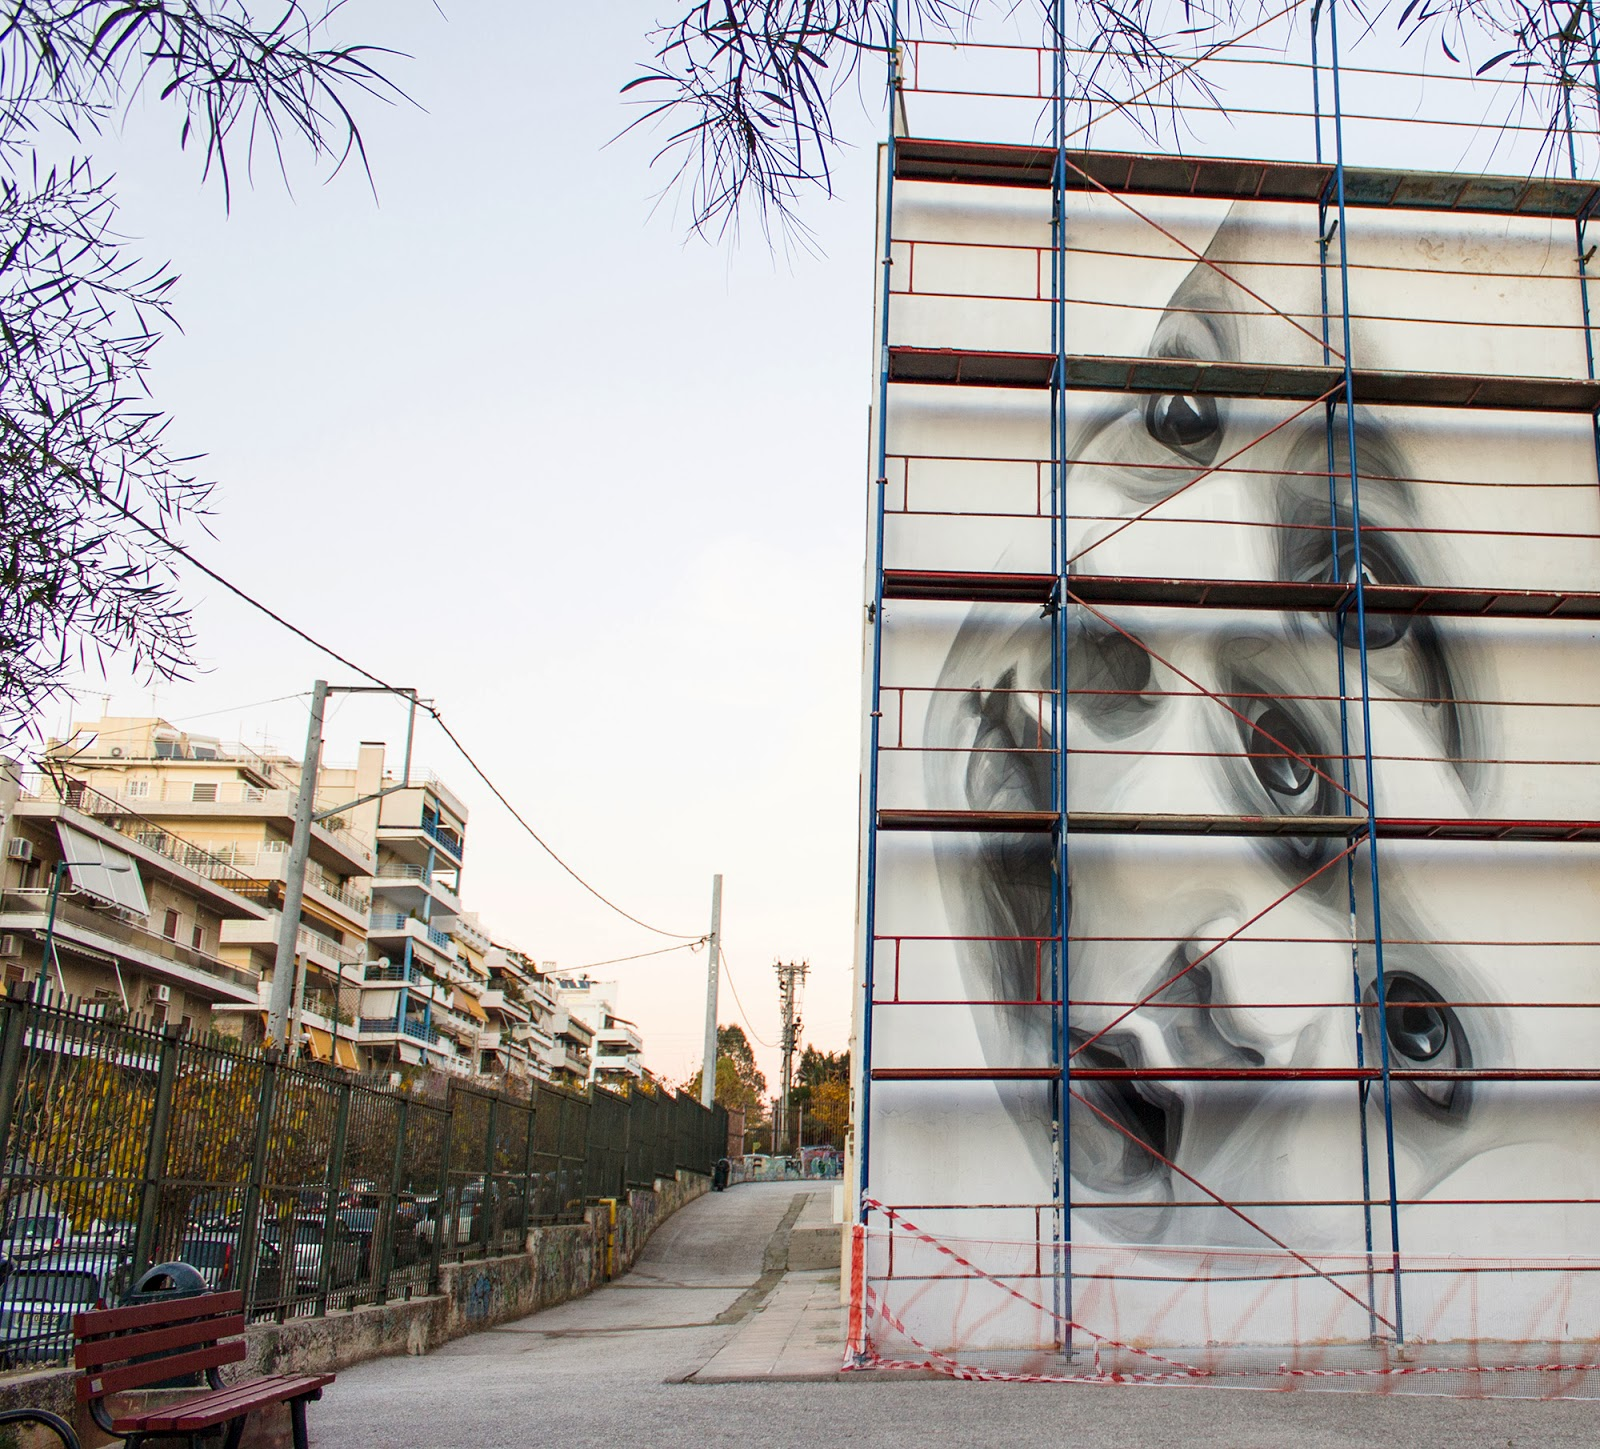 ino-future-new-mural-athens-greece-06